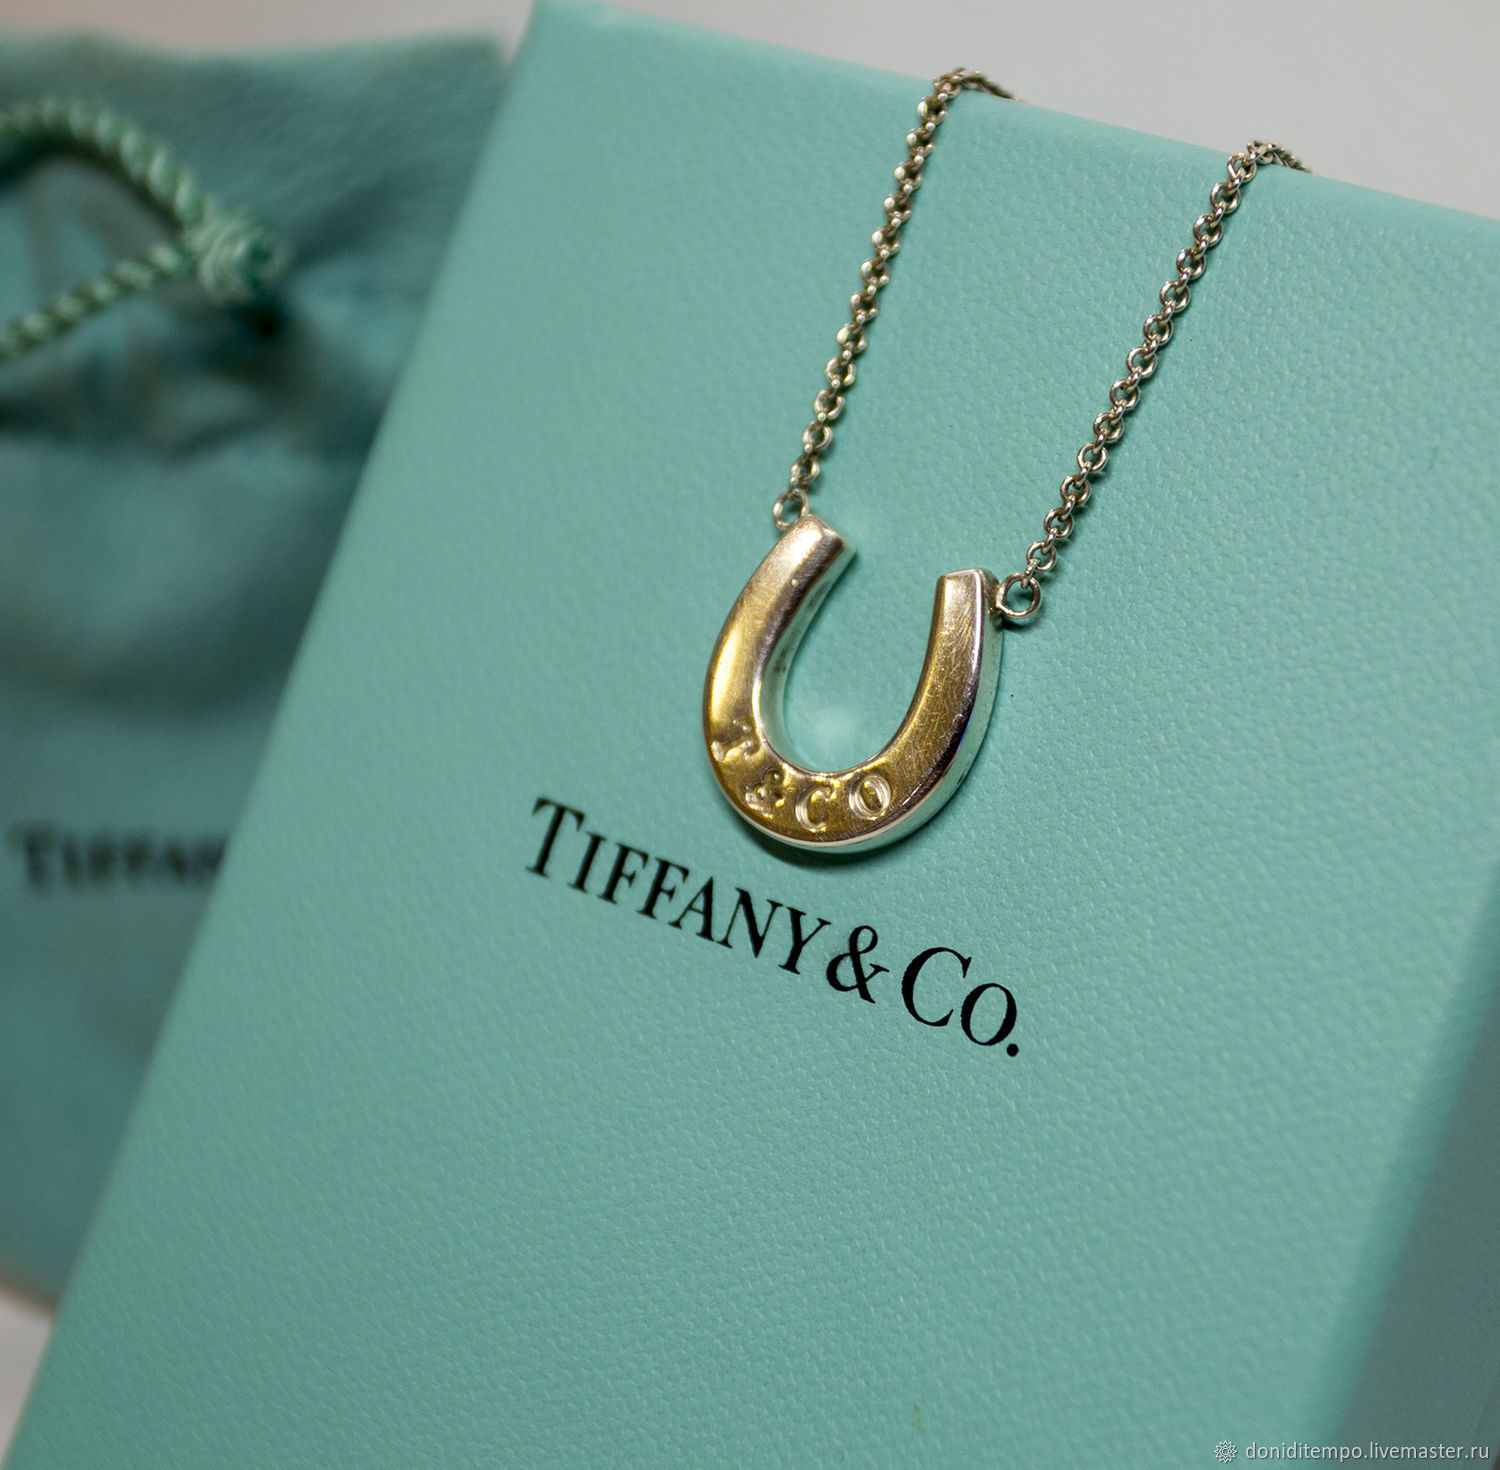 19f3fc312 Vintage Jewelry. Livemaster - handmade. Buy Tiffany & Co necklace 'Happy'  original ...